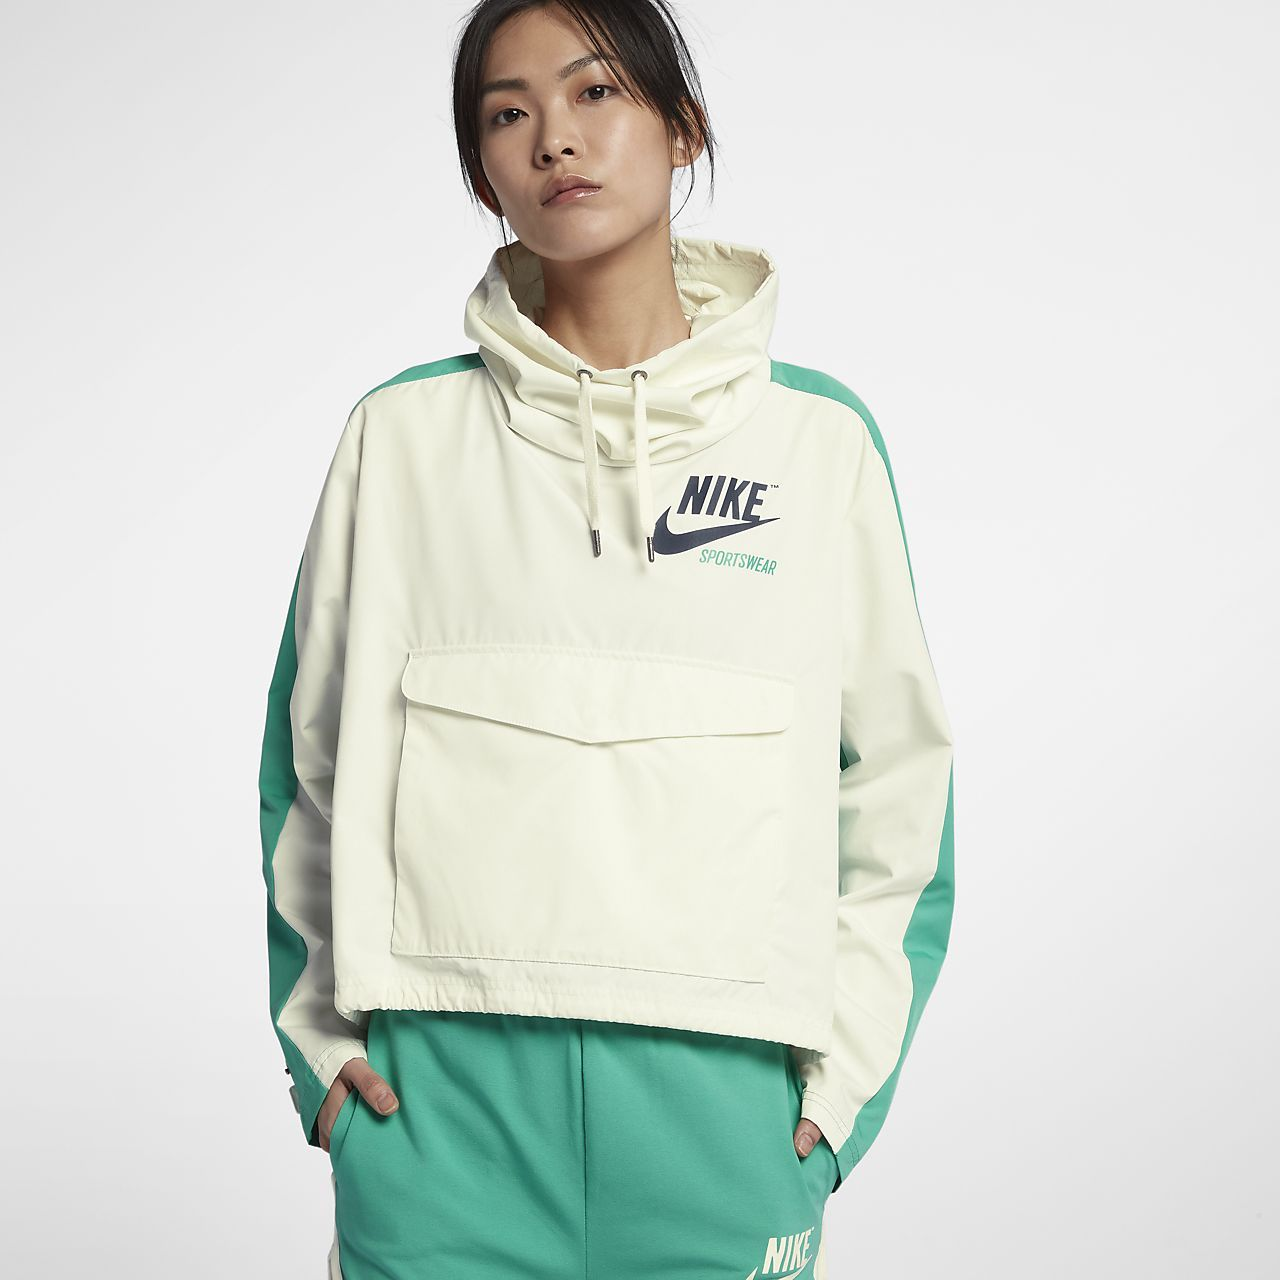 05751bdef7fa Nike Sportswear Archive Women's Jacket | Want That | Jackets for ...